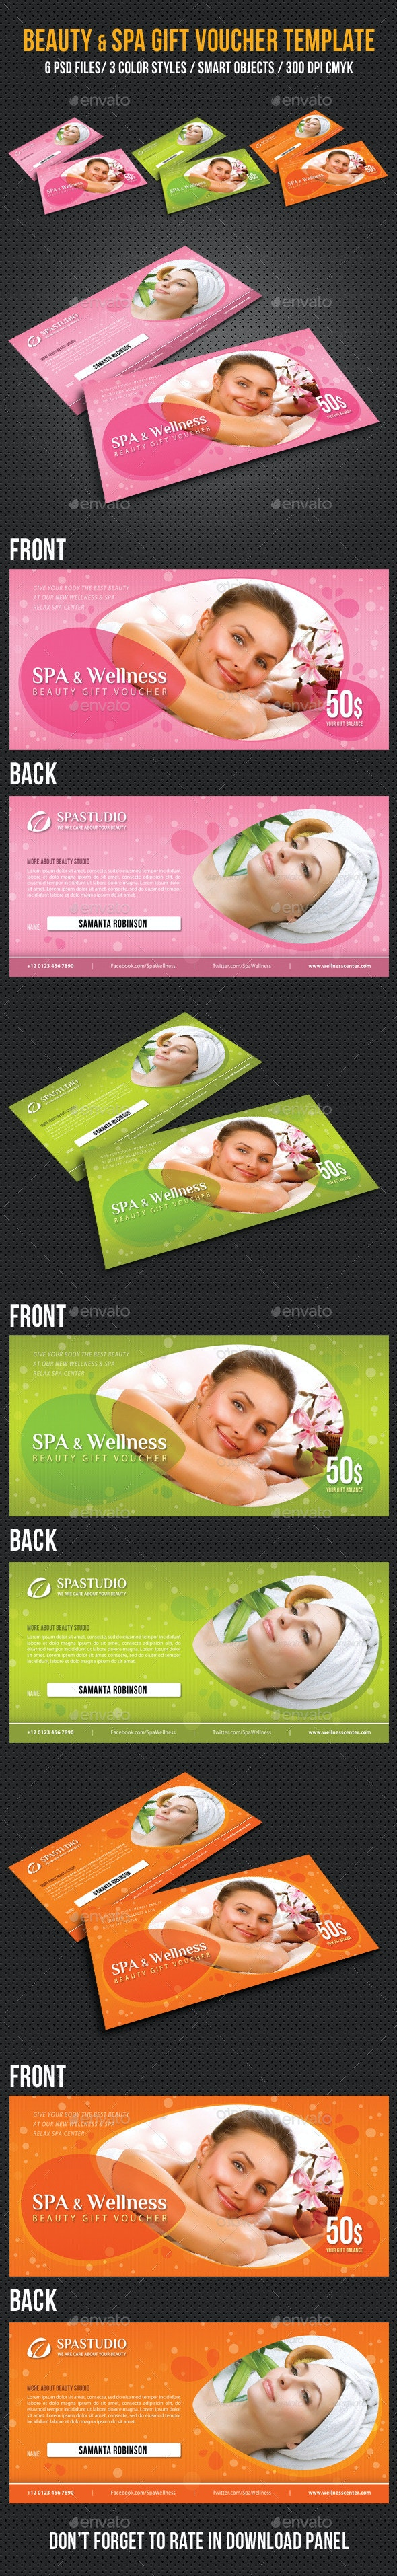 Spa and Wellness Gift Voucher V01 - Cards & Invites Print Templates